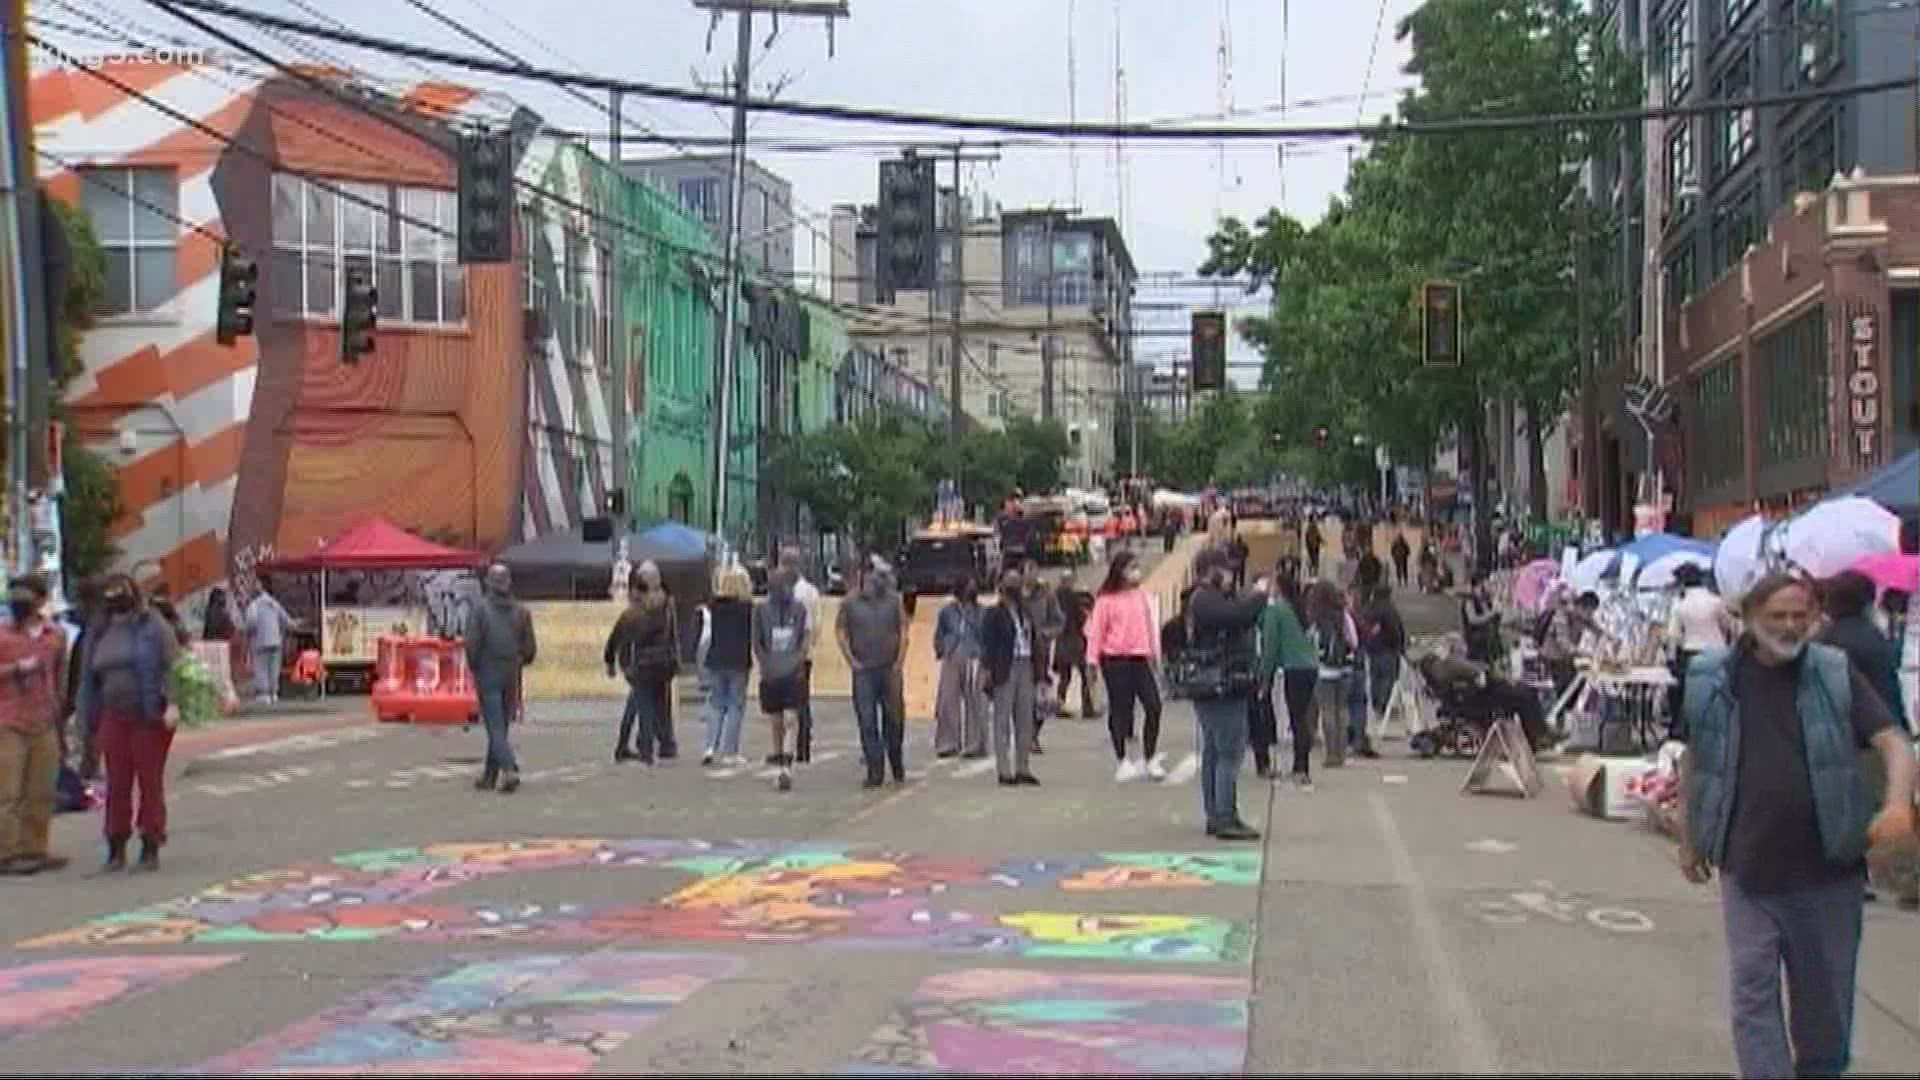 Frustrated Residents Near Seattle S Chop Zone Want Their Neighborhood Back King5 Com The Neighbourhood Capitol Hill Seattle Resident